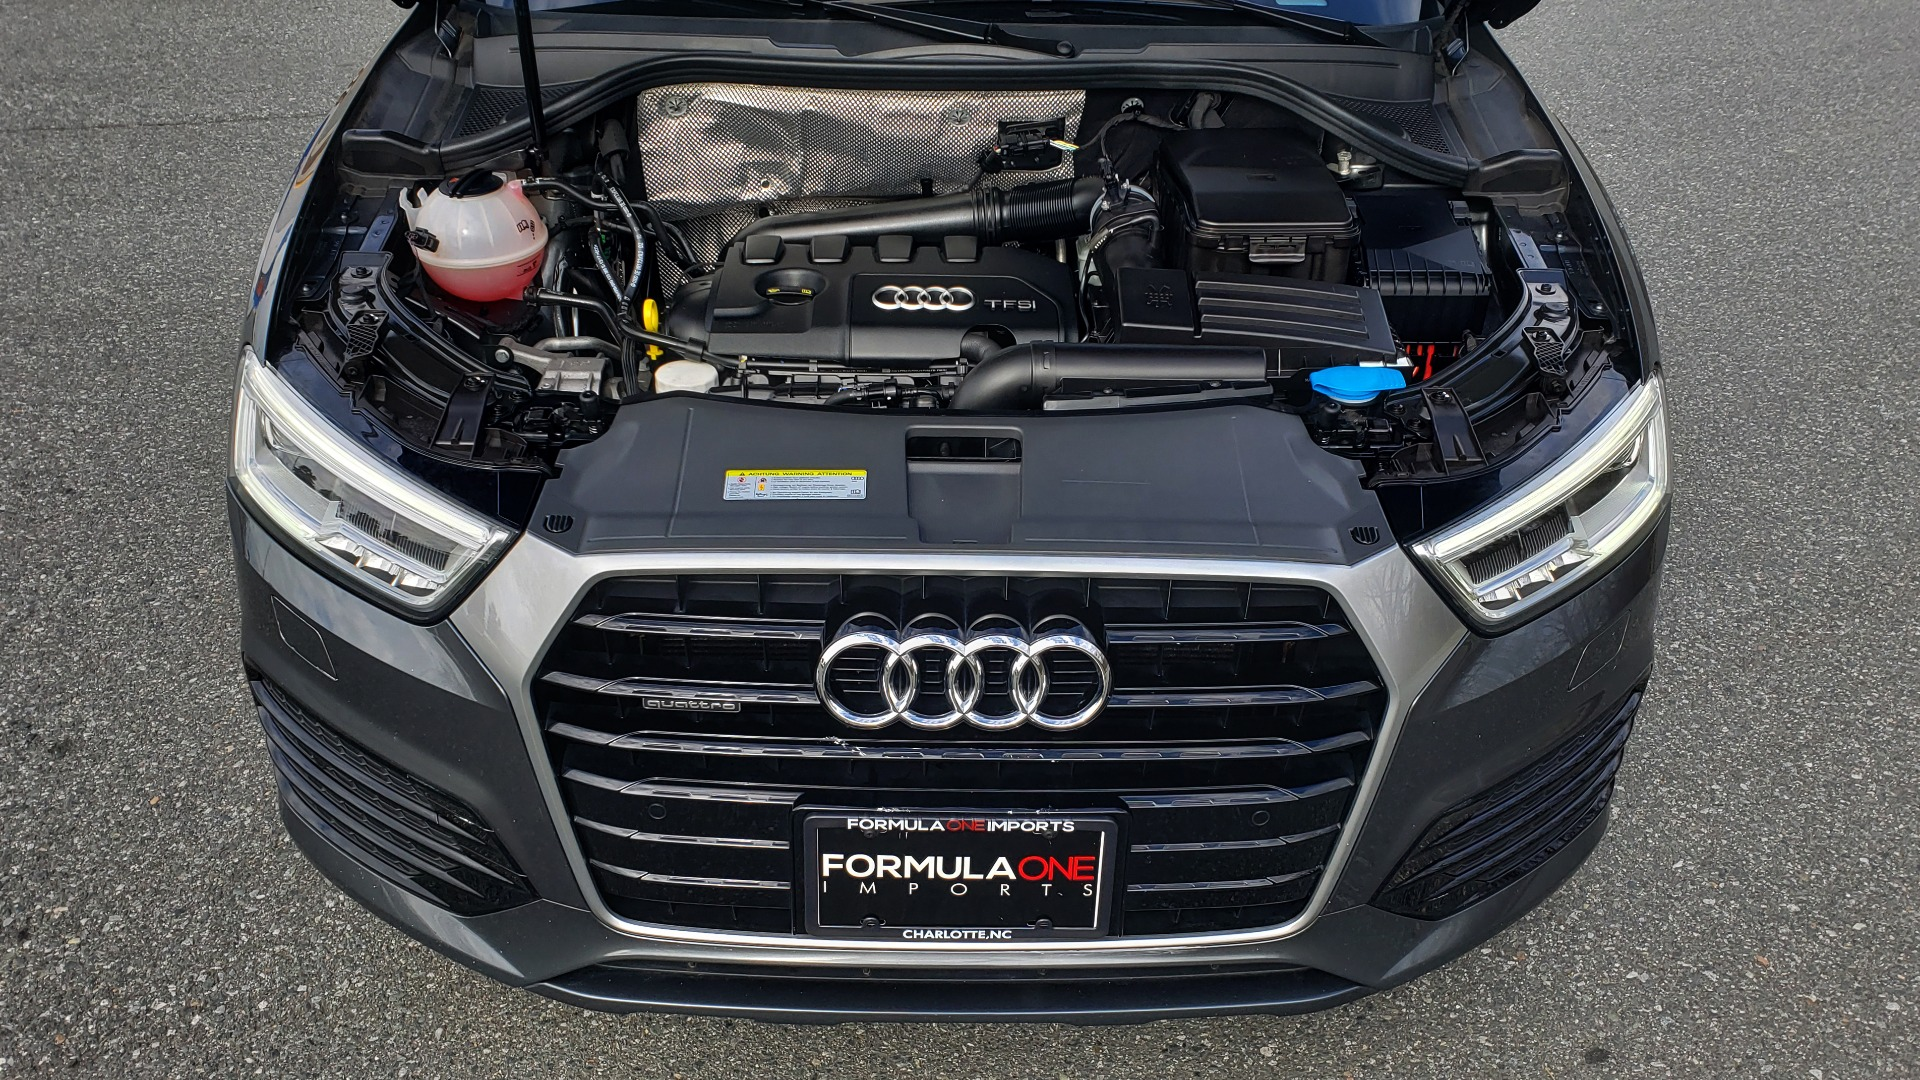 Used 2018 Audi Q3 2.0T PREMIUM PLUS / AWD / PANO-ROOF / REARVIEW for sale Sold at Formula Imports in Charlotte NC 28227 10